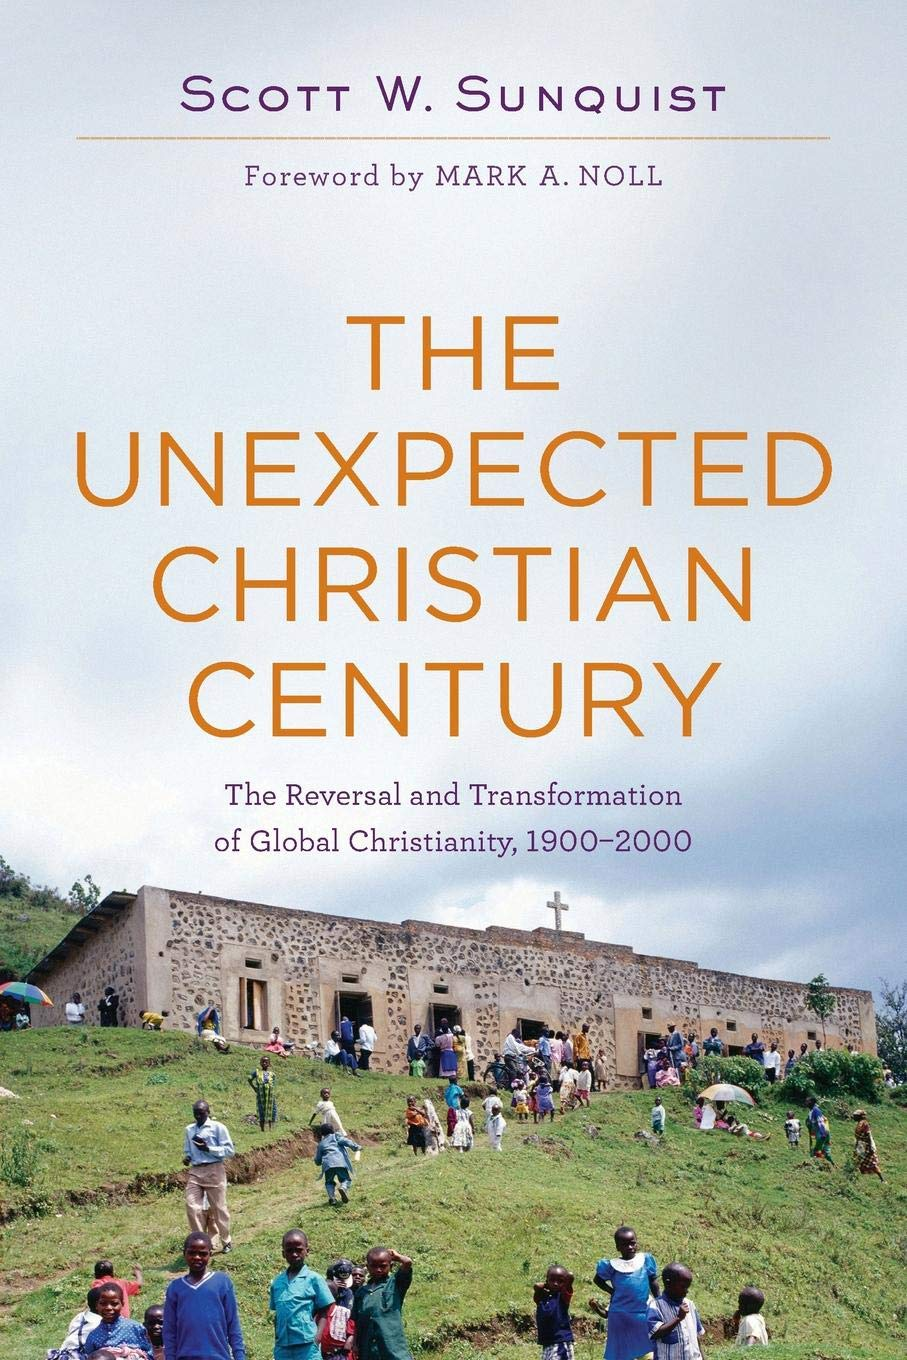 The Unexpected Christian Century: The Reversal and Transformation of Global Christianity, 1900-2000 PDF